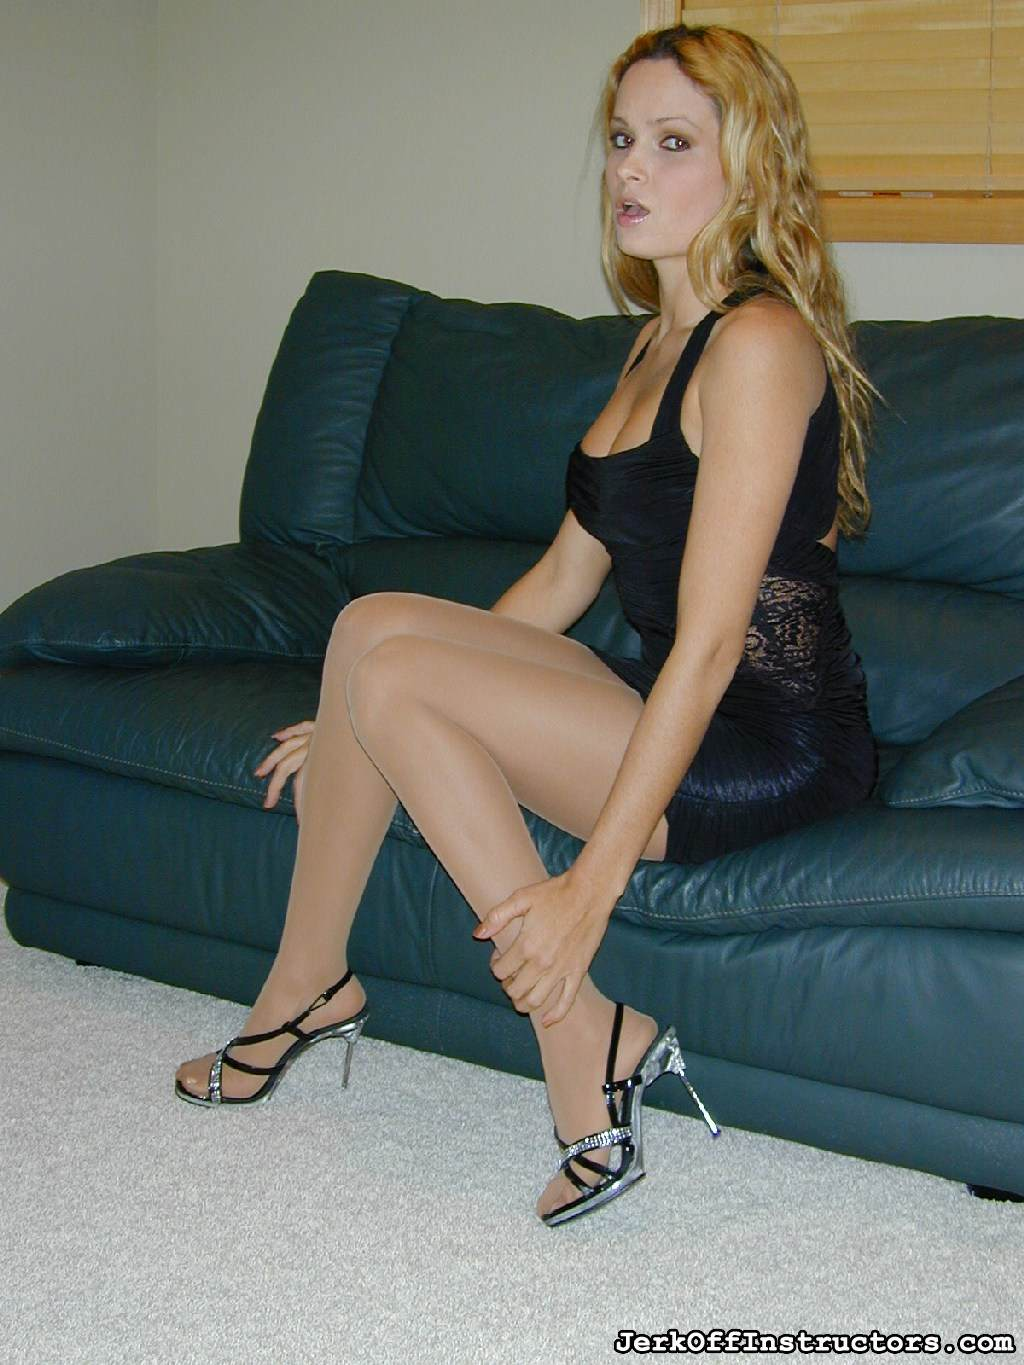 Picture #1 of Mistress loves the feeling of hard sex toy inside her nuch better that your weak penis that only penetrating wto inches of her pussy